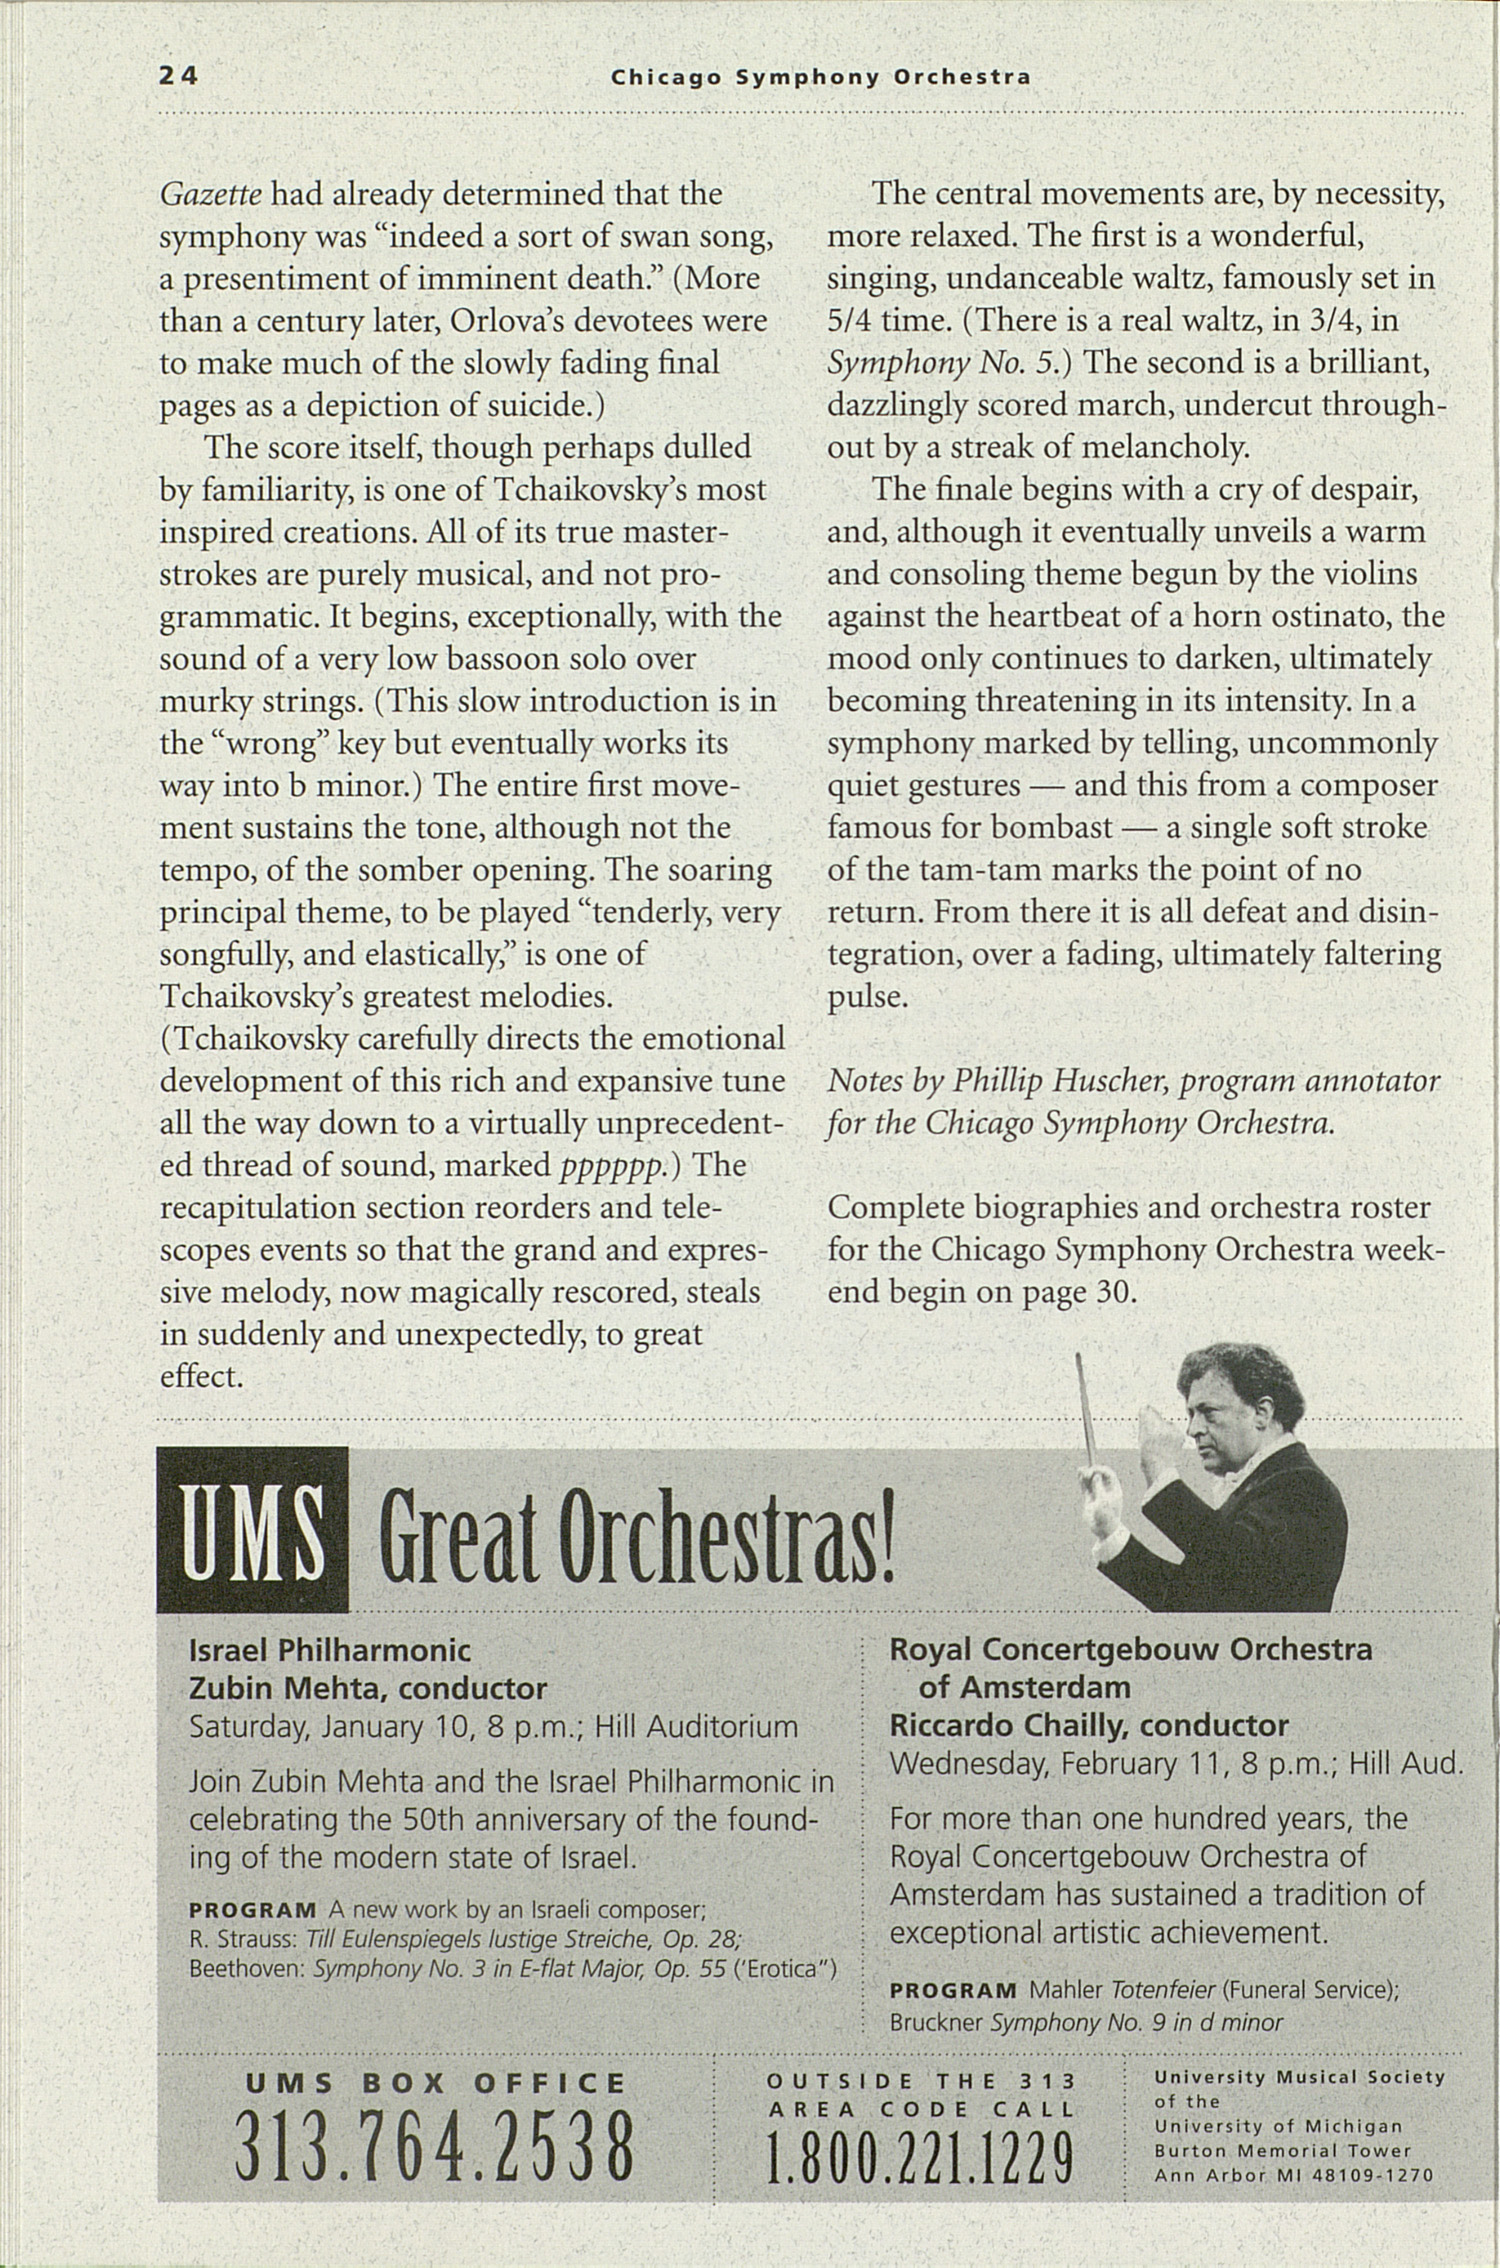 UMS Concert Program, Sunday Sep. 21 To Oct. 08: University Musical Society: 1997-1998 Fall - Sunday Sep. 21 To Oct. 08 --  image